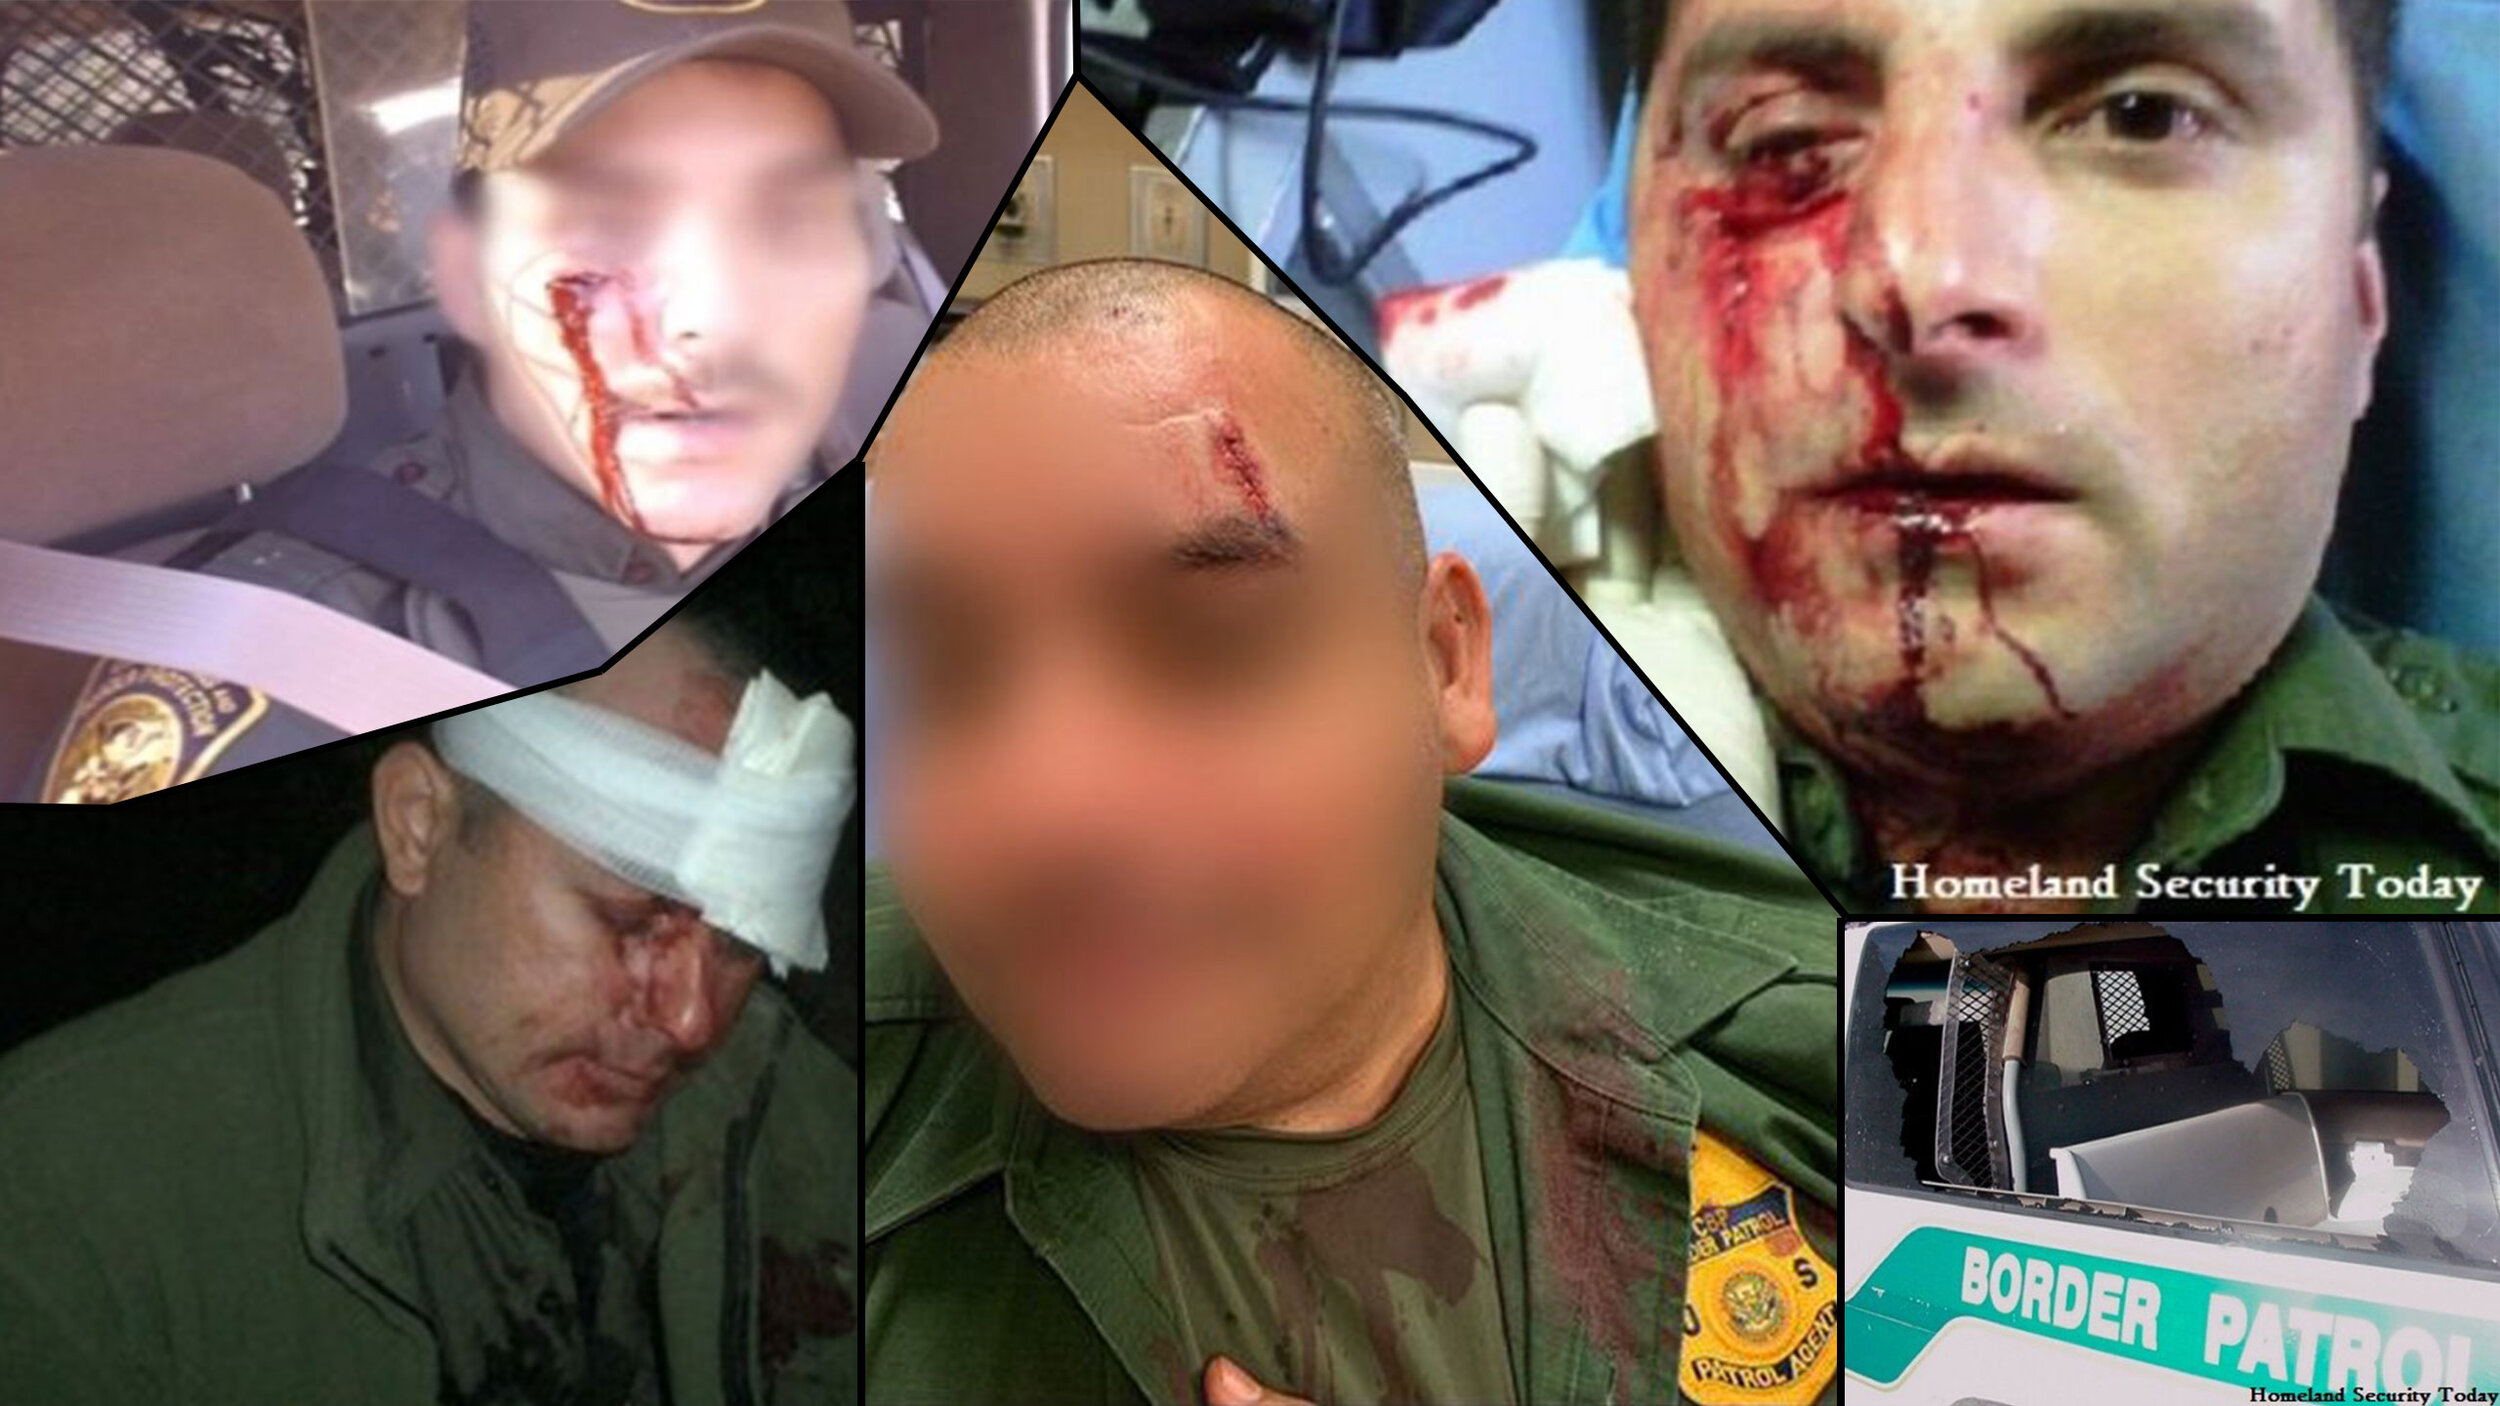 Photos of border agents injured over the years 2006-2019. Illegals are known to assault and throw rocks at our Border Patrol, breaking vehicle windows and causing significant head injuries.   SOURCES: ( Breitbart , 2014) Graphic Images Justify Border Patrol's Use of Deadly Force Against Rock Attacks; ( 10News , 2019) Border Patrol agent injured after rock thrown at patrol car, via  CBP El Centro Twitter , 2019